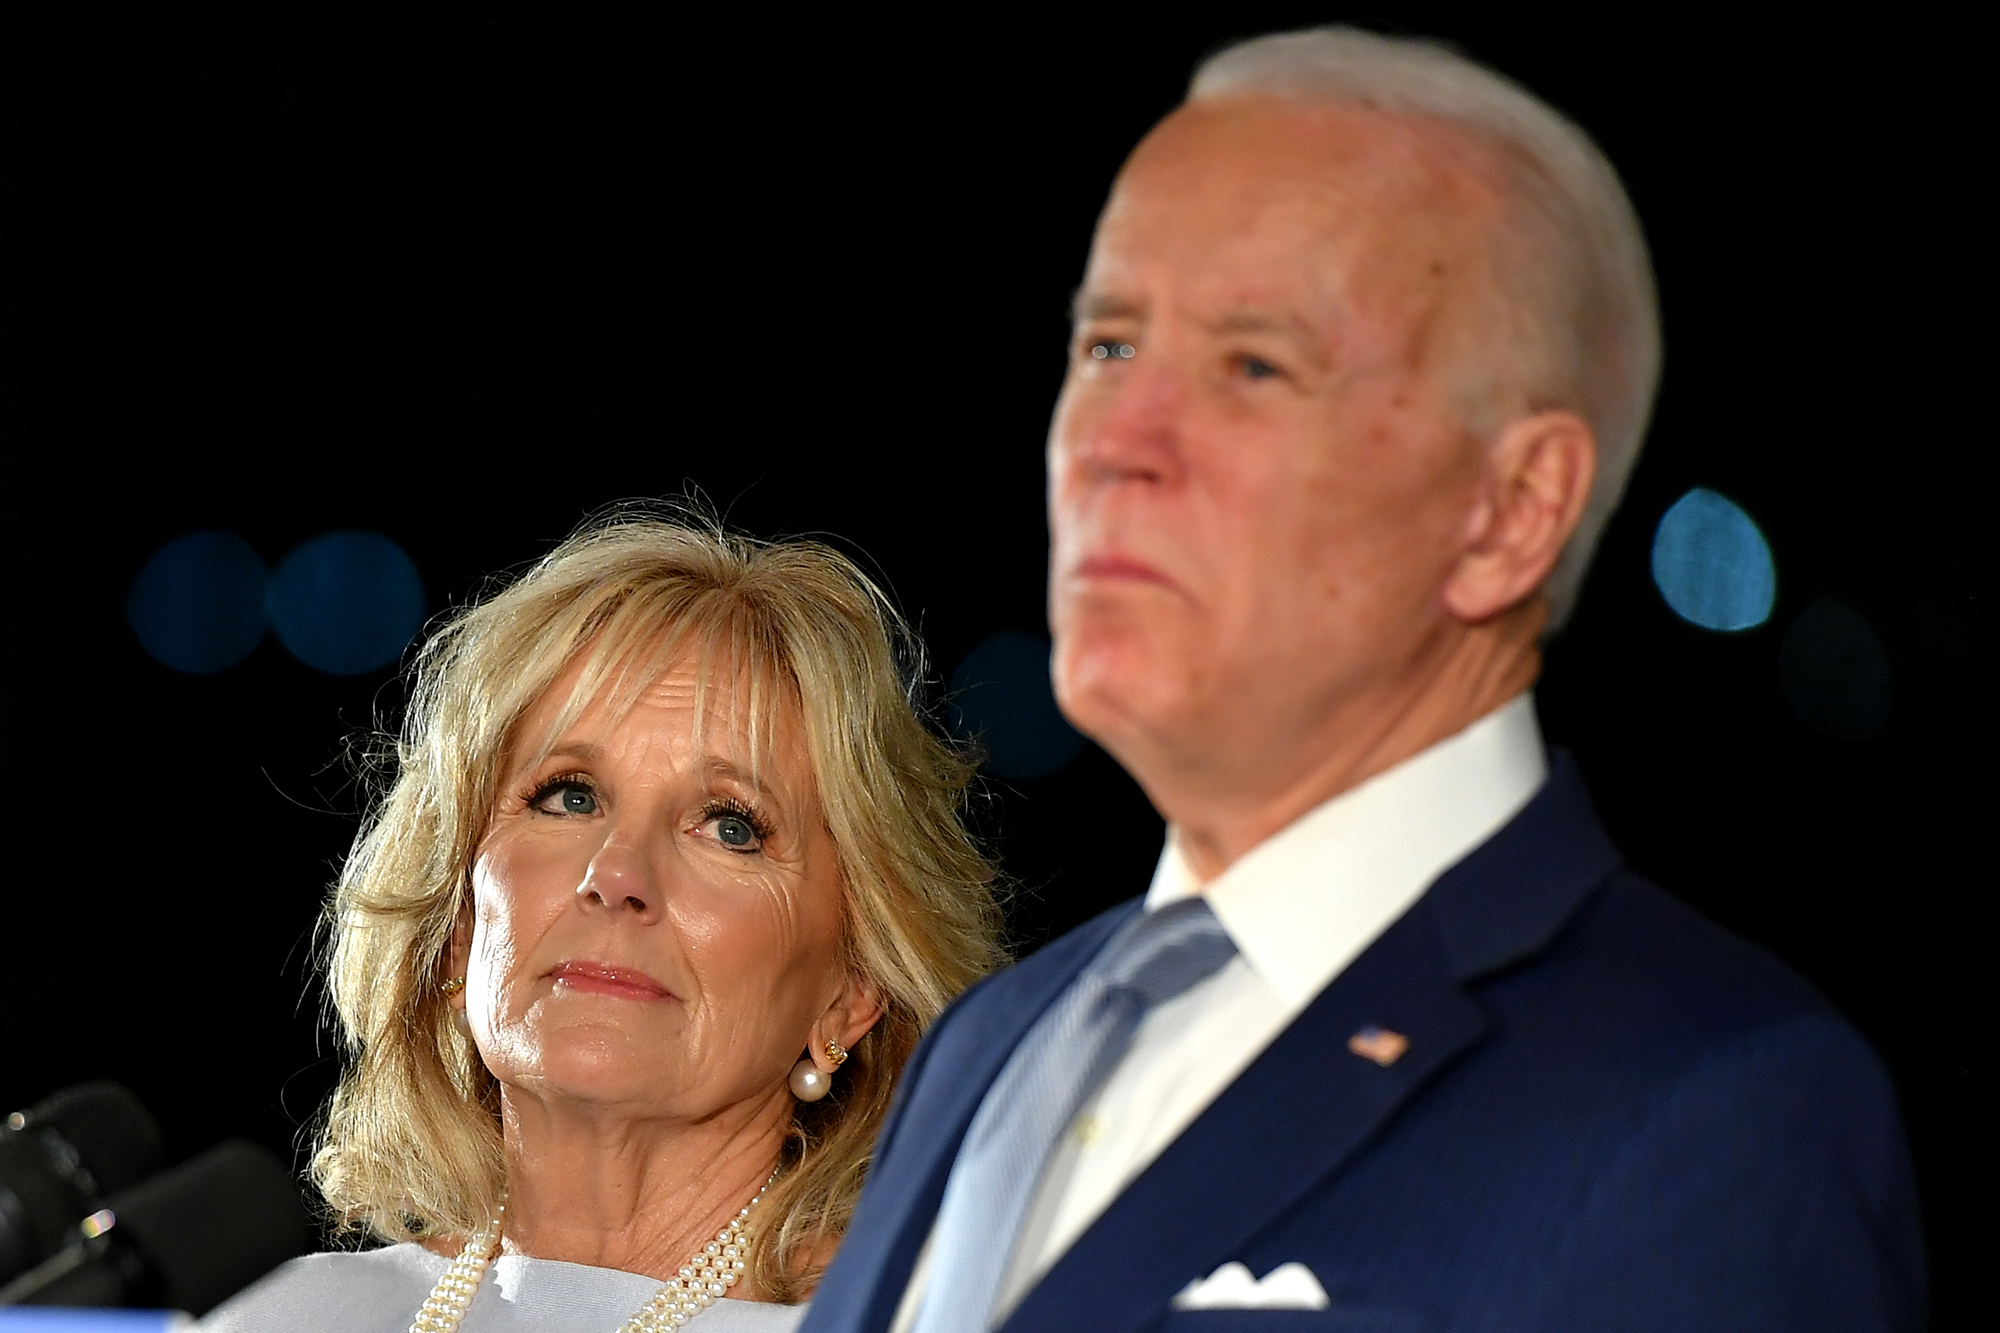 Democratic presidential hopeful former Vice President Joe Biden speaks, flanked by his wife Jill Biden, at the National Constitution Center in Philadelphia, Pennsylvania on March 10.